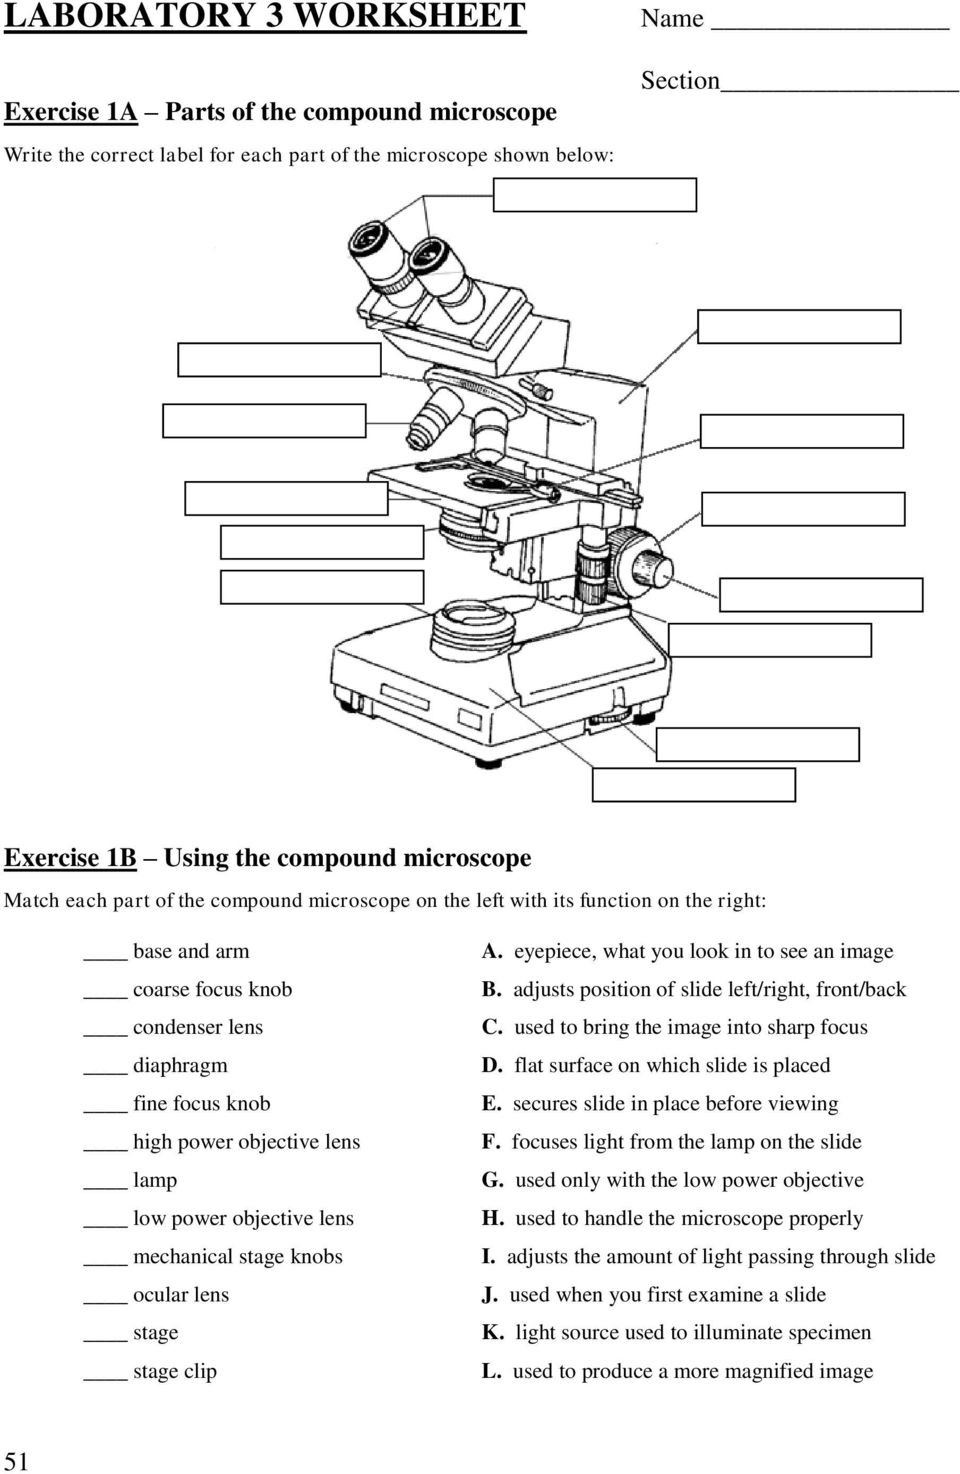 Parts Of A Microscope Worksheet Lab 3 Use Of the Microscope Pdf Free Download